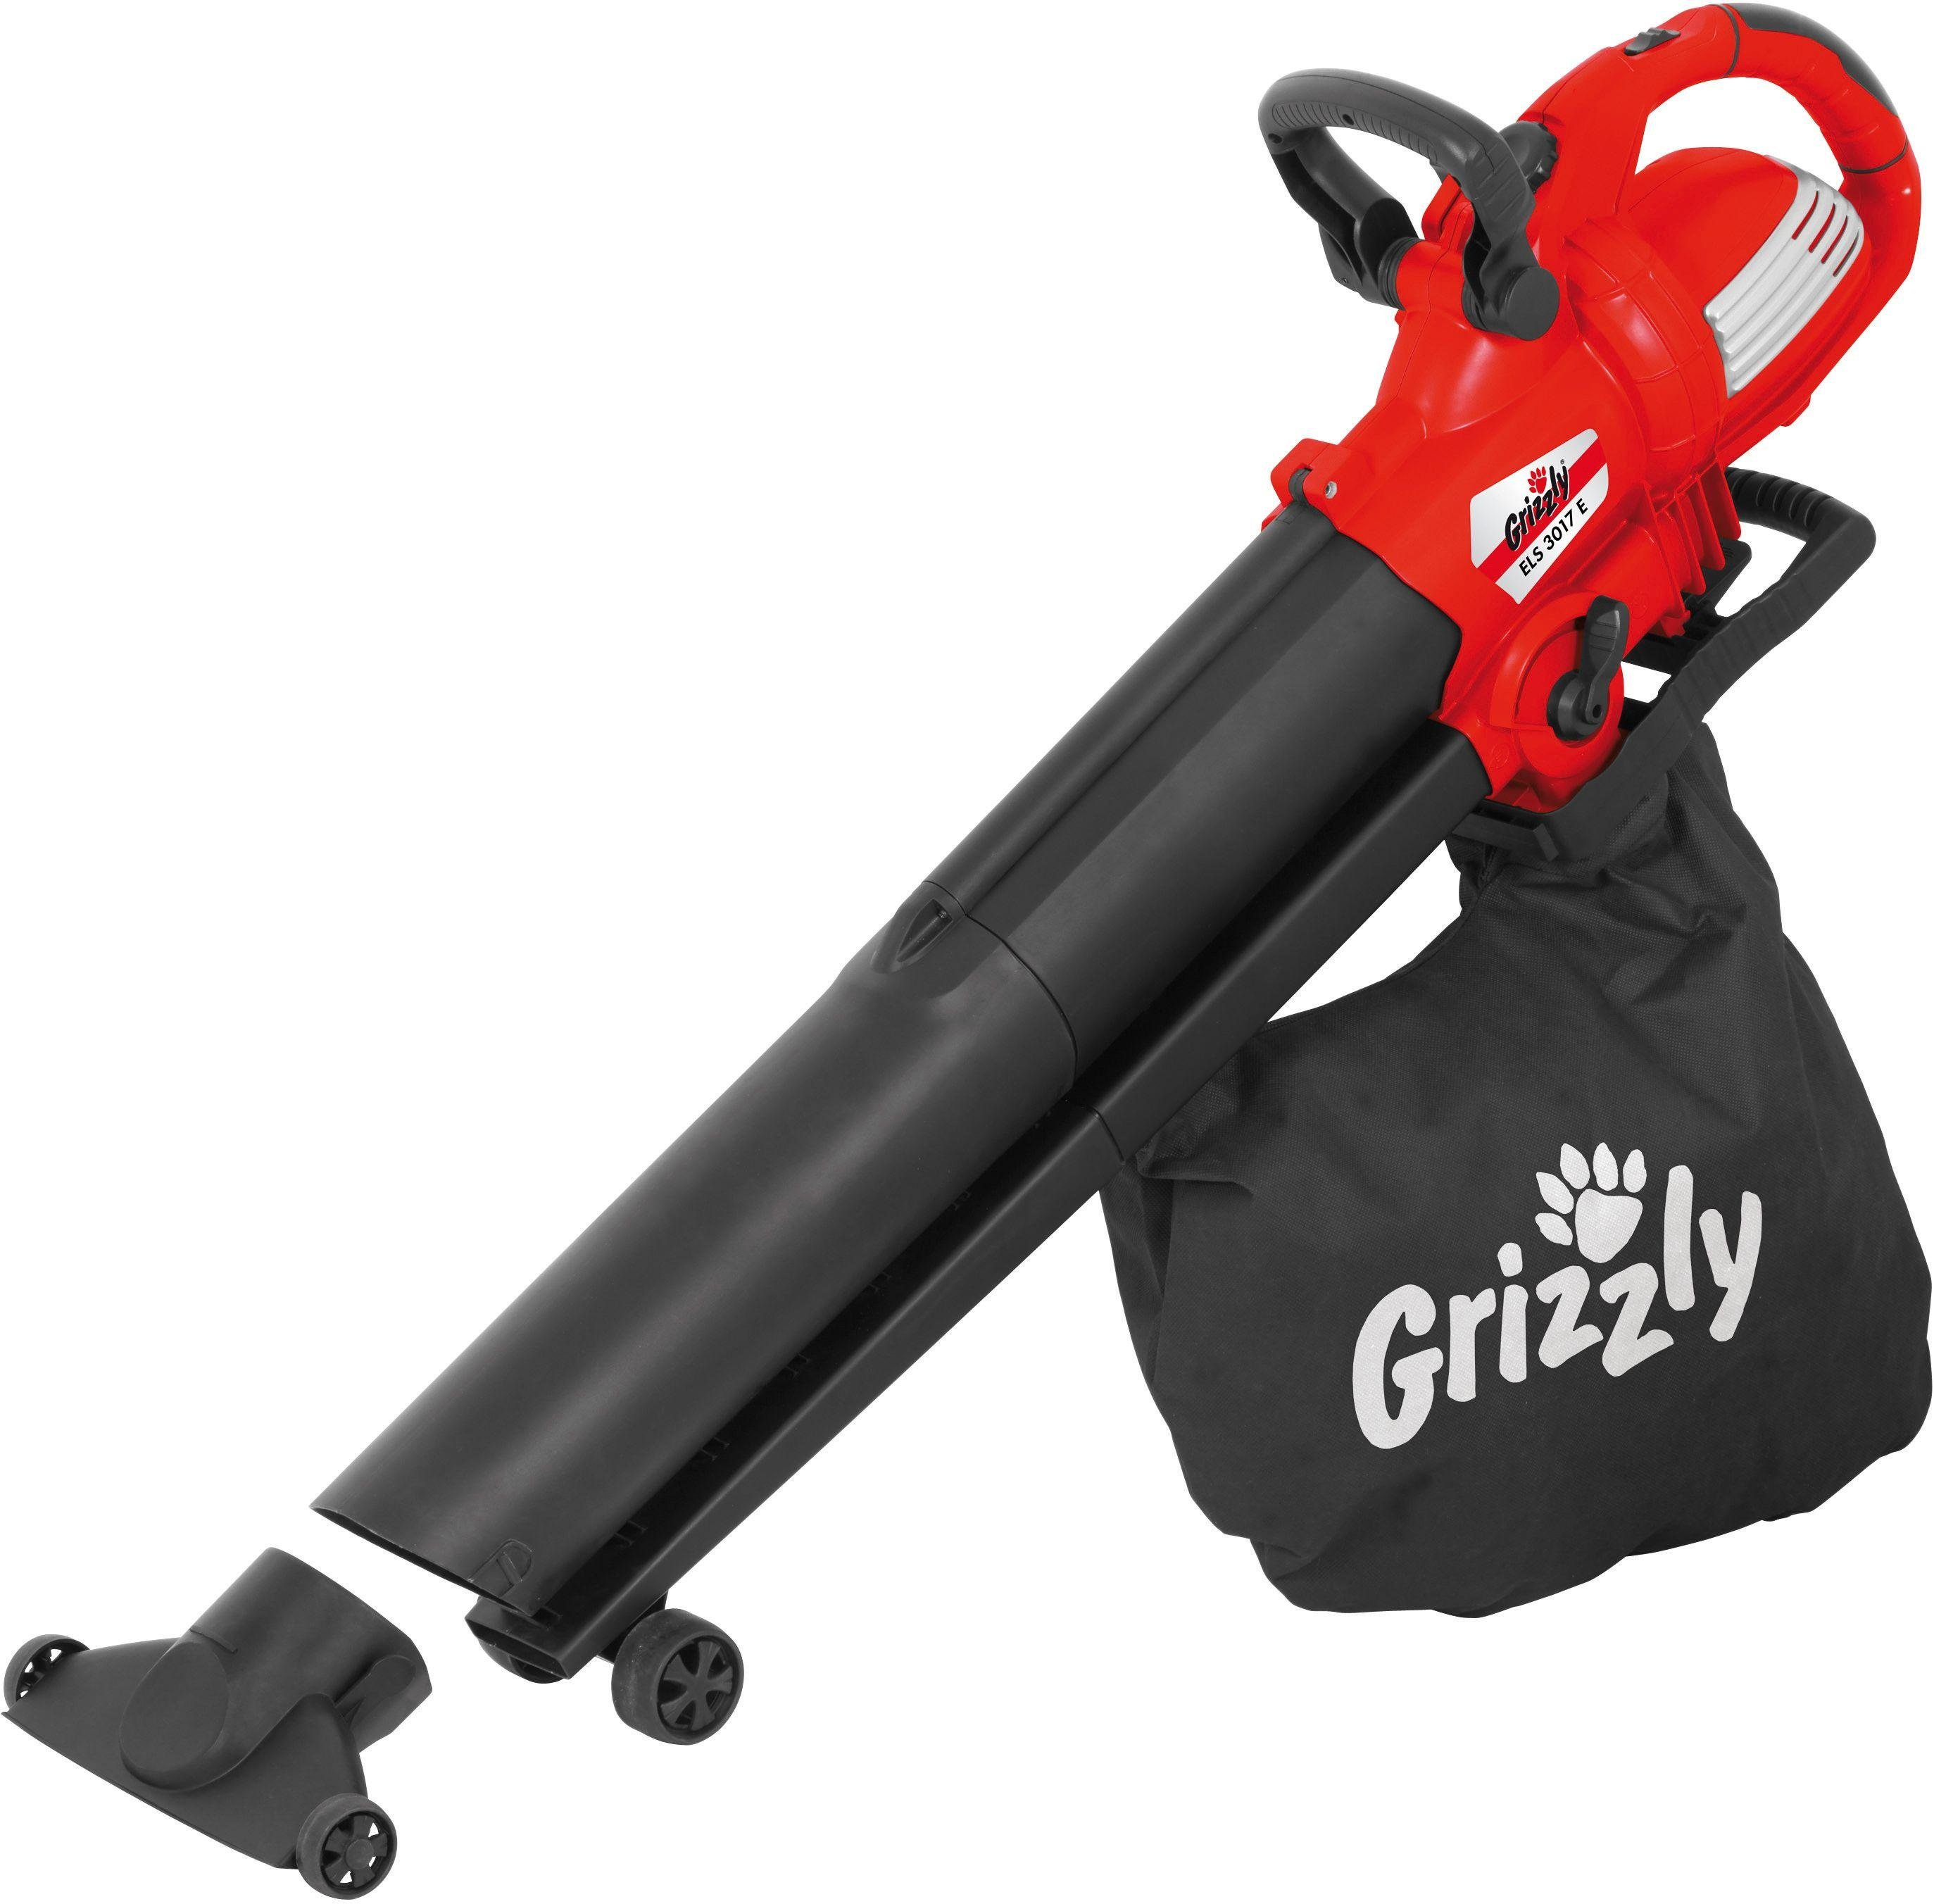 Image of Grizzly Tools - 3000W Pro Mulching Corded Leaf Vacuum